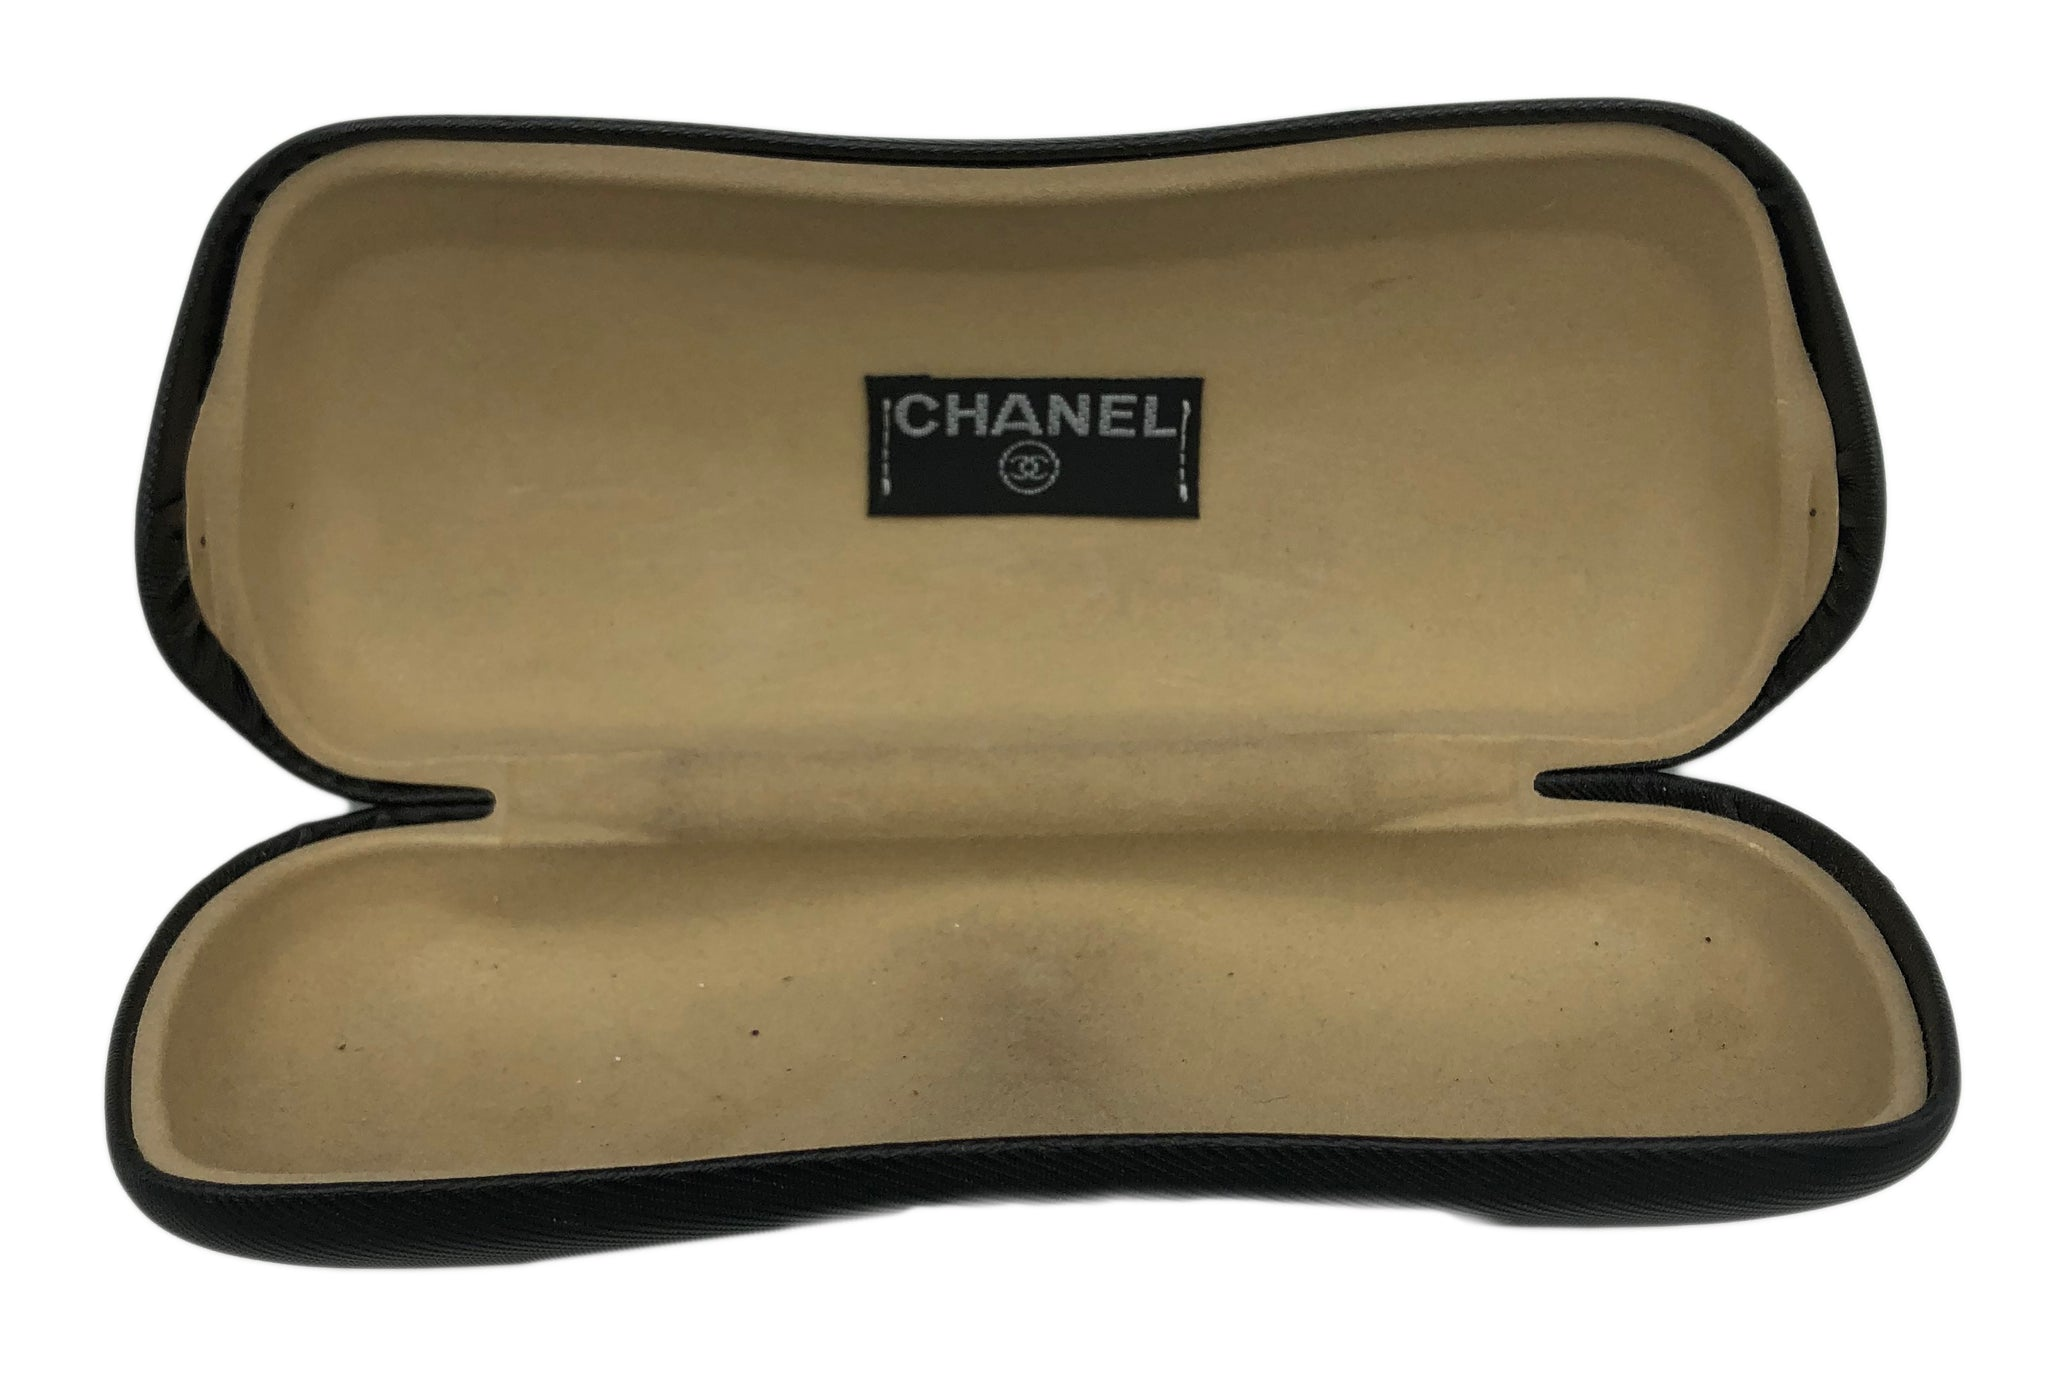 Chanel 2000s Rimless Logo Sunglasses OPEN CASE 4 of 5